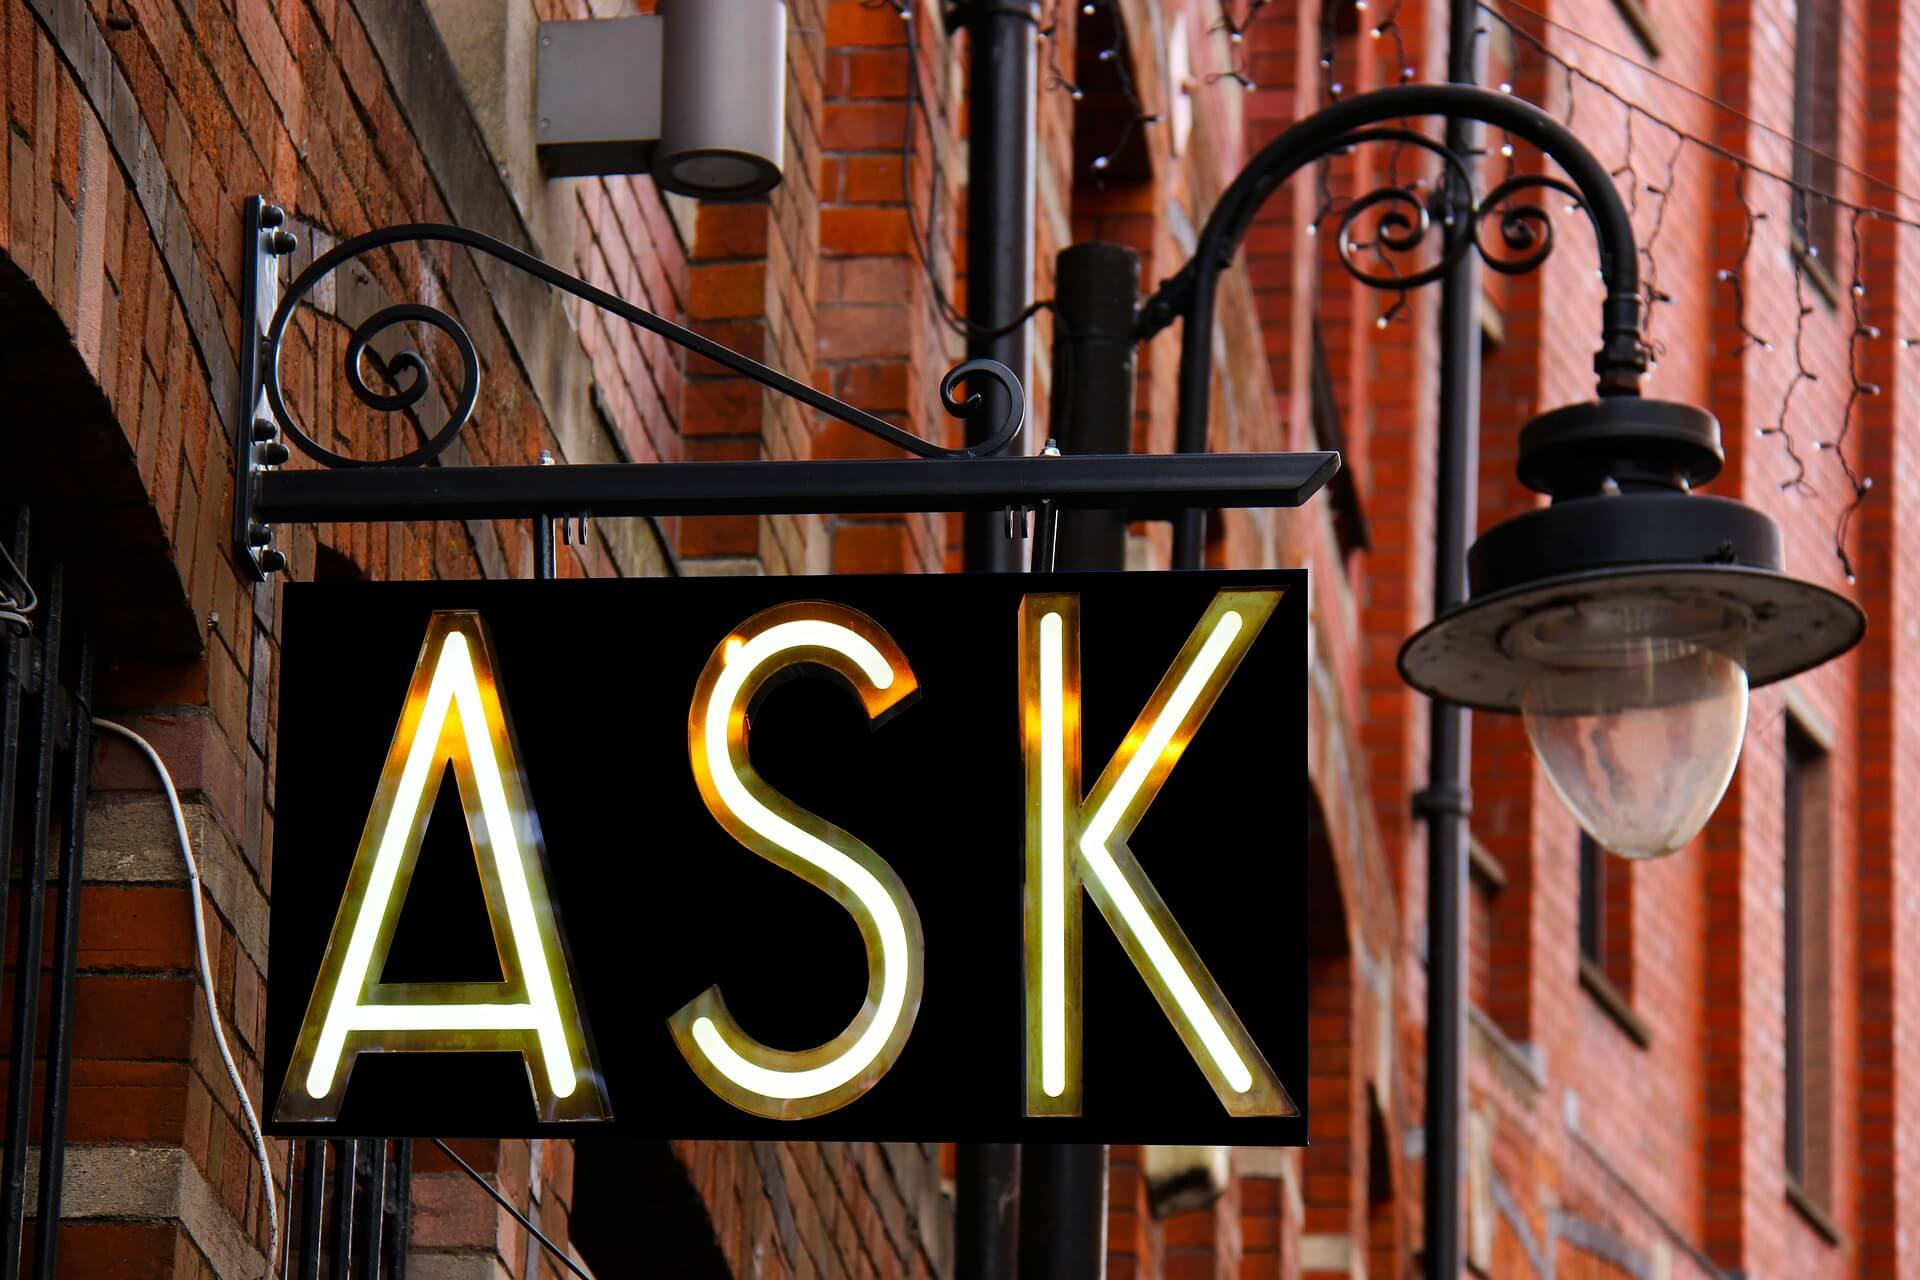 The Skill of Asking